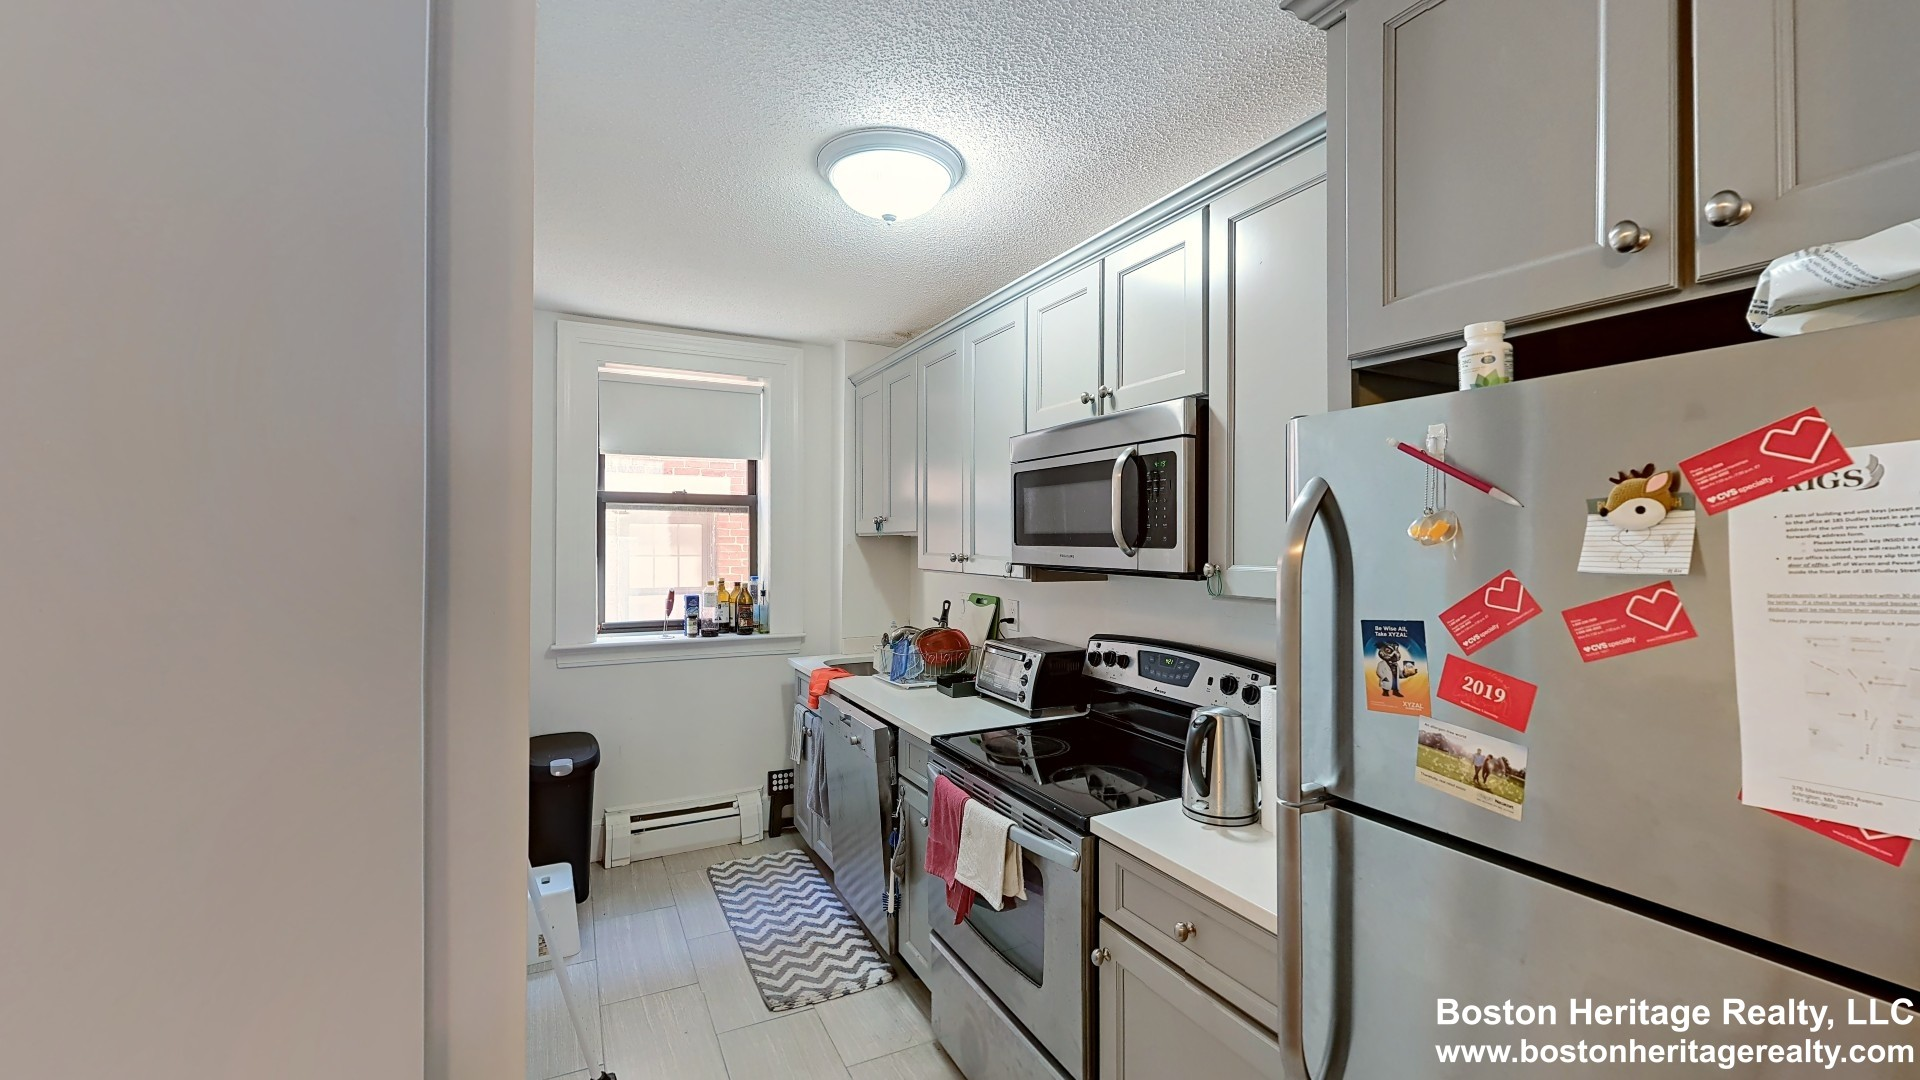 2 Beds, 1 Bath apartment in Boston, Fenway for $2,500